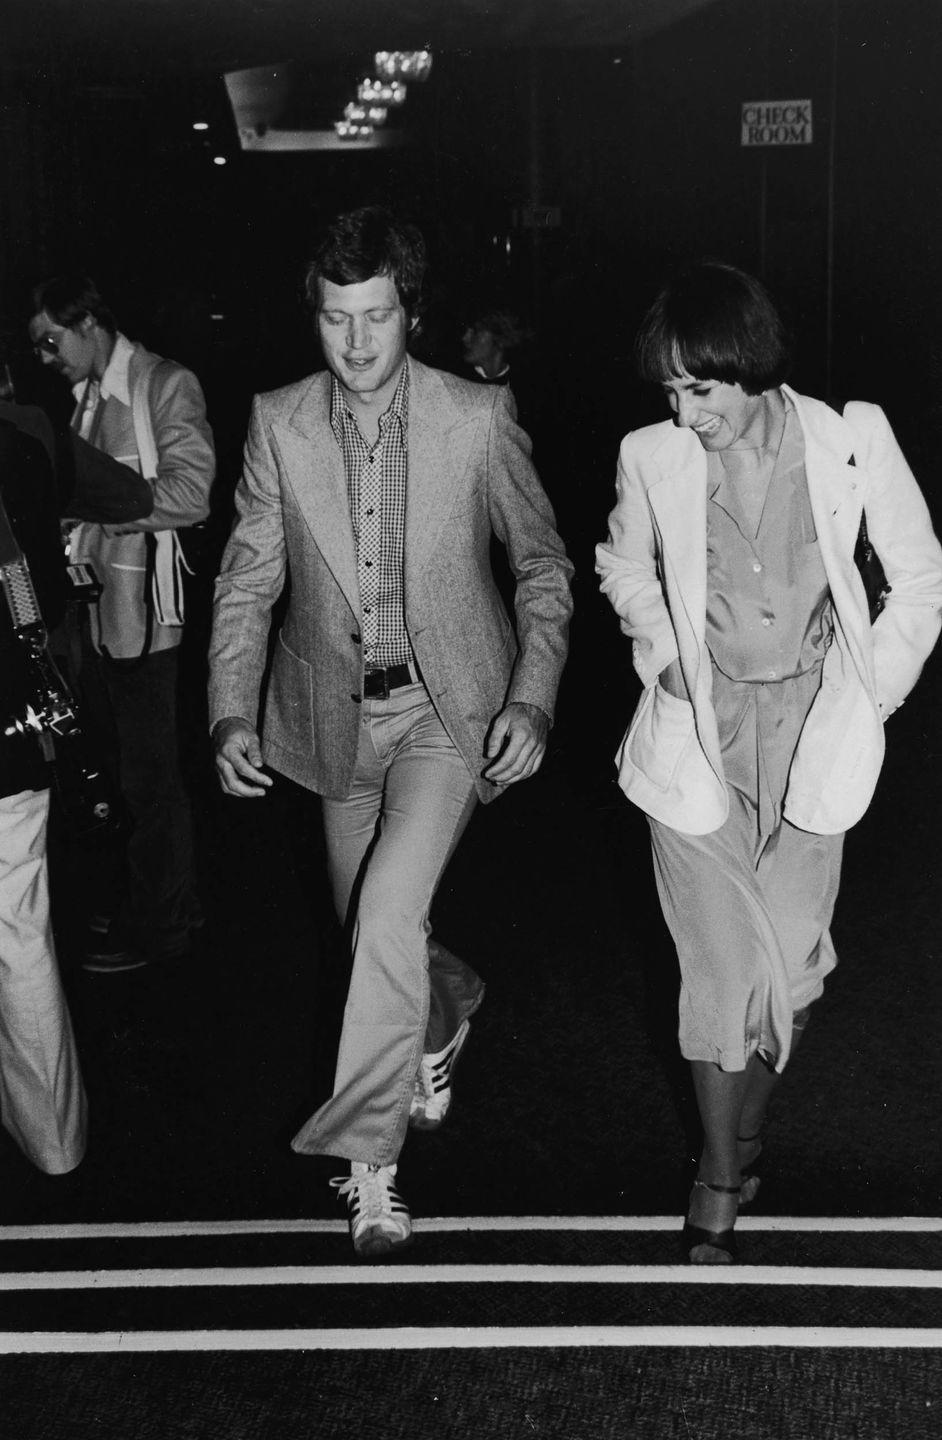 <p>David Letterman walks with Merrill Markoe during a S.H.A.R.E. party at the Hollywood Palladium on May 19, 1979.</p>